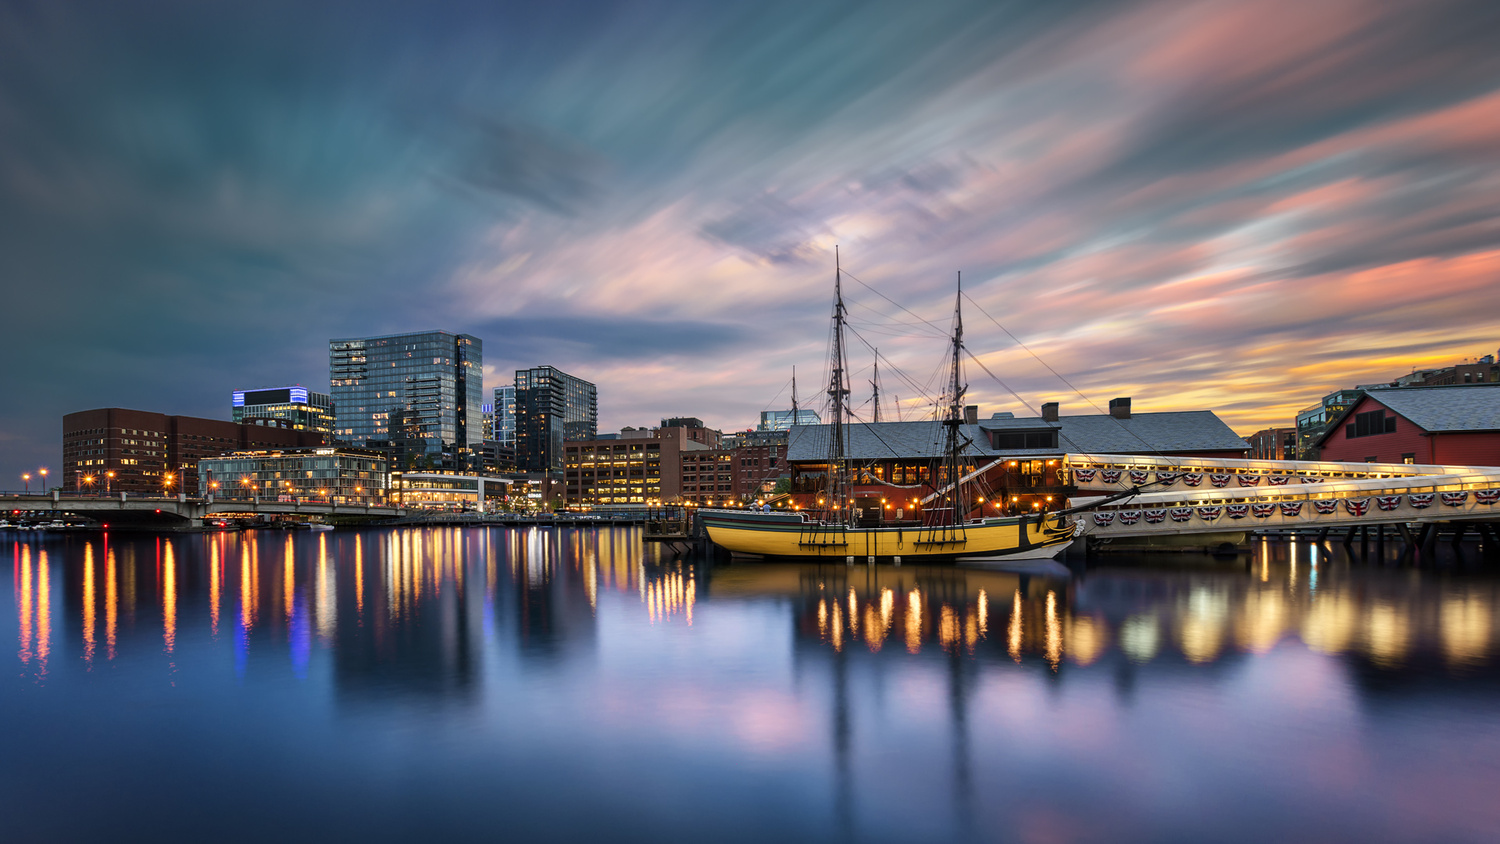 Boston Tea Party by Stas F